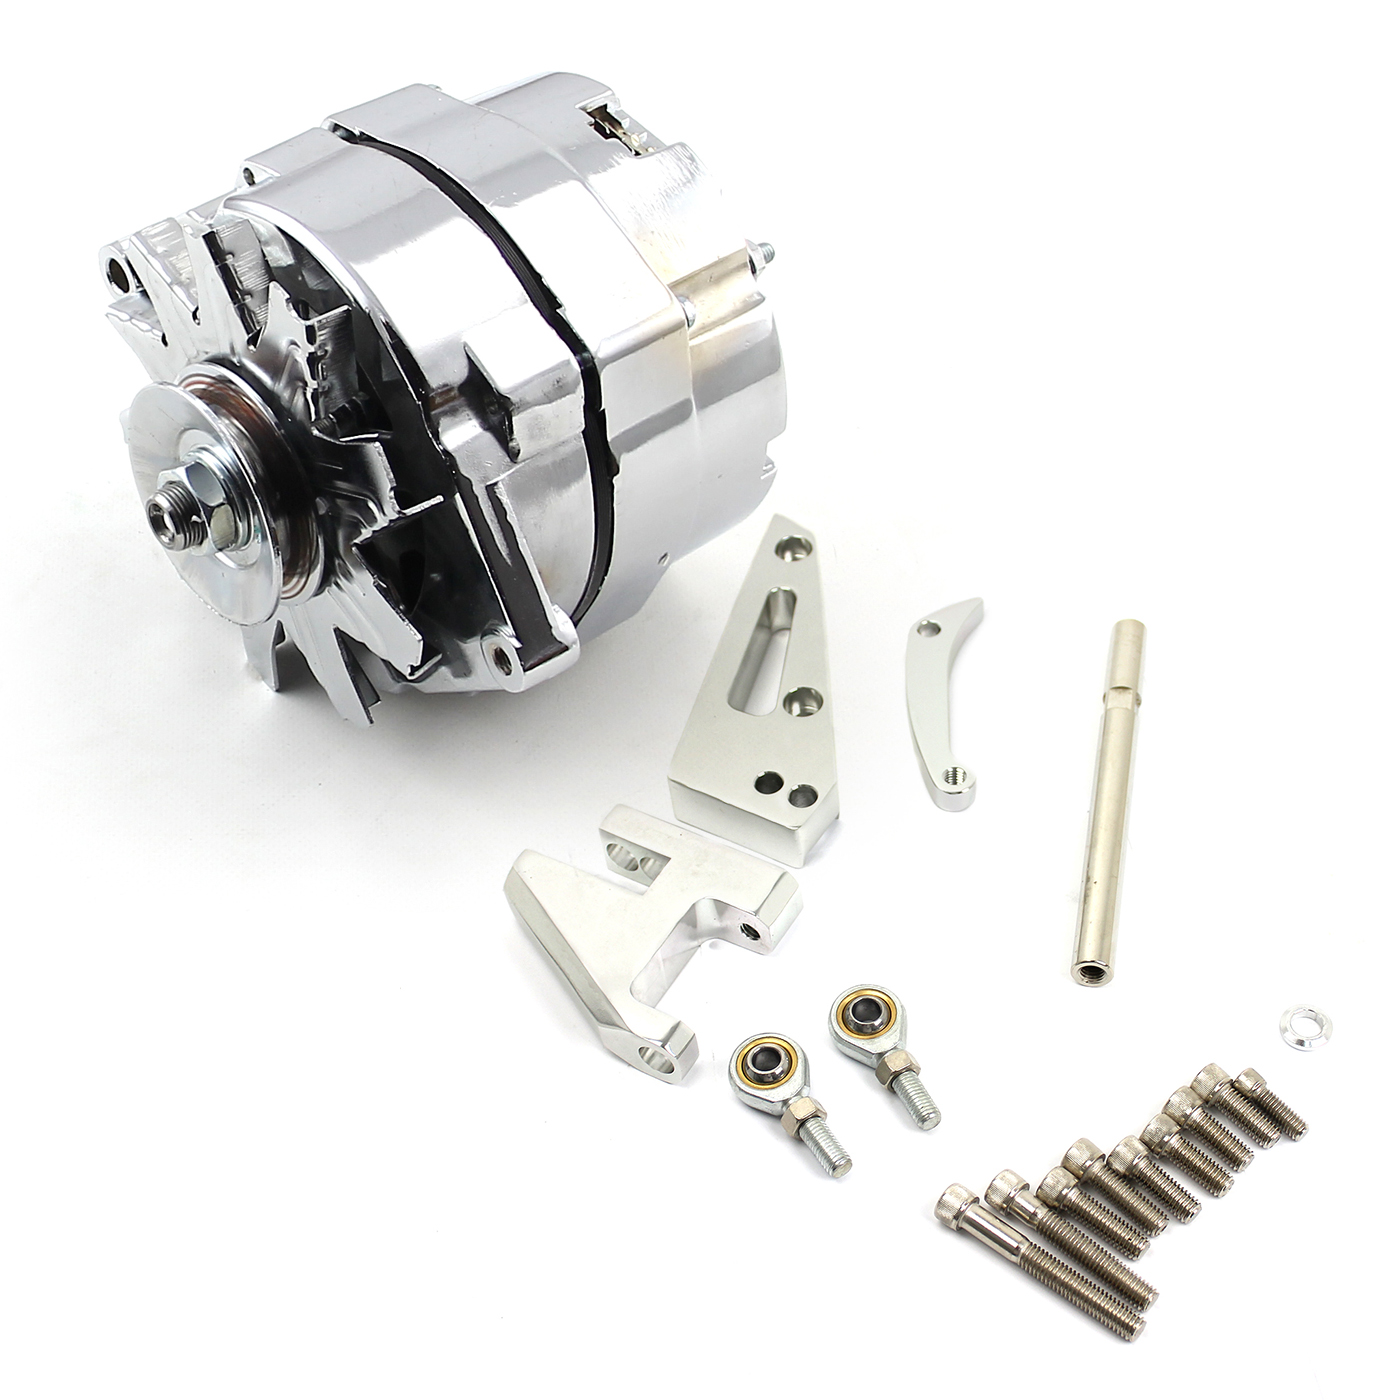 Chevy SBC 350 100 Amp 1 Wire Alternator & SWP Aluminum Bracket Kit Polished